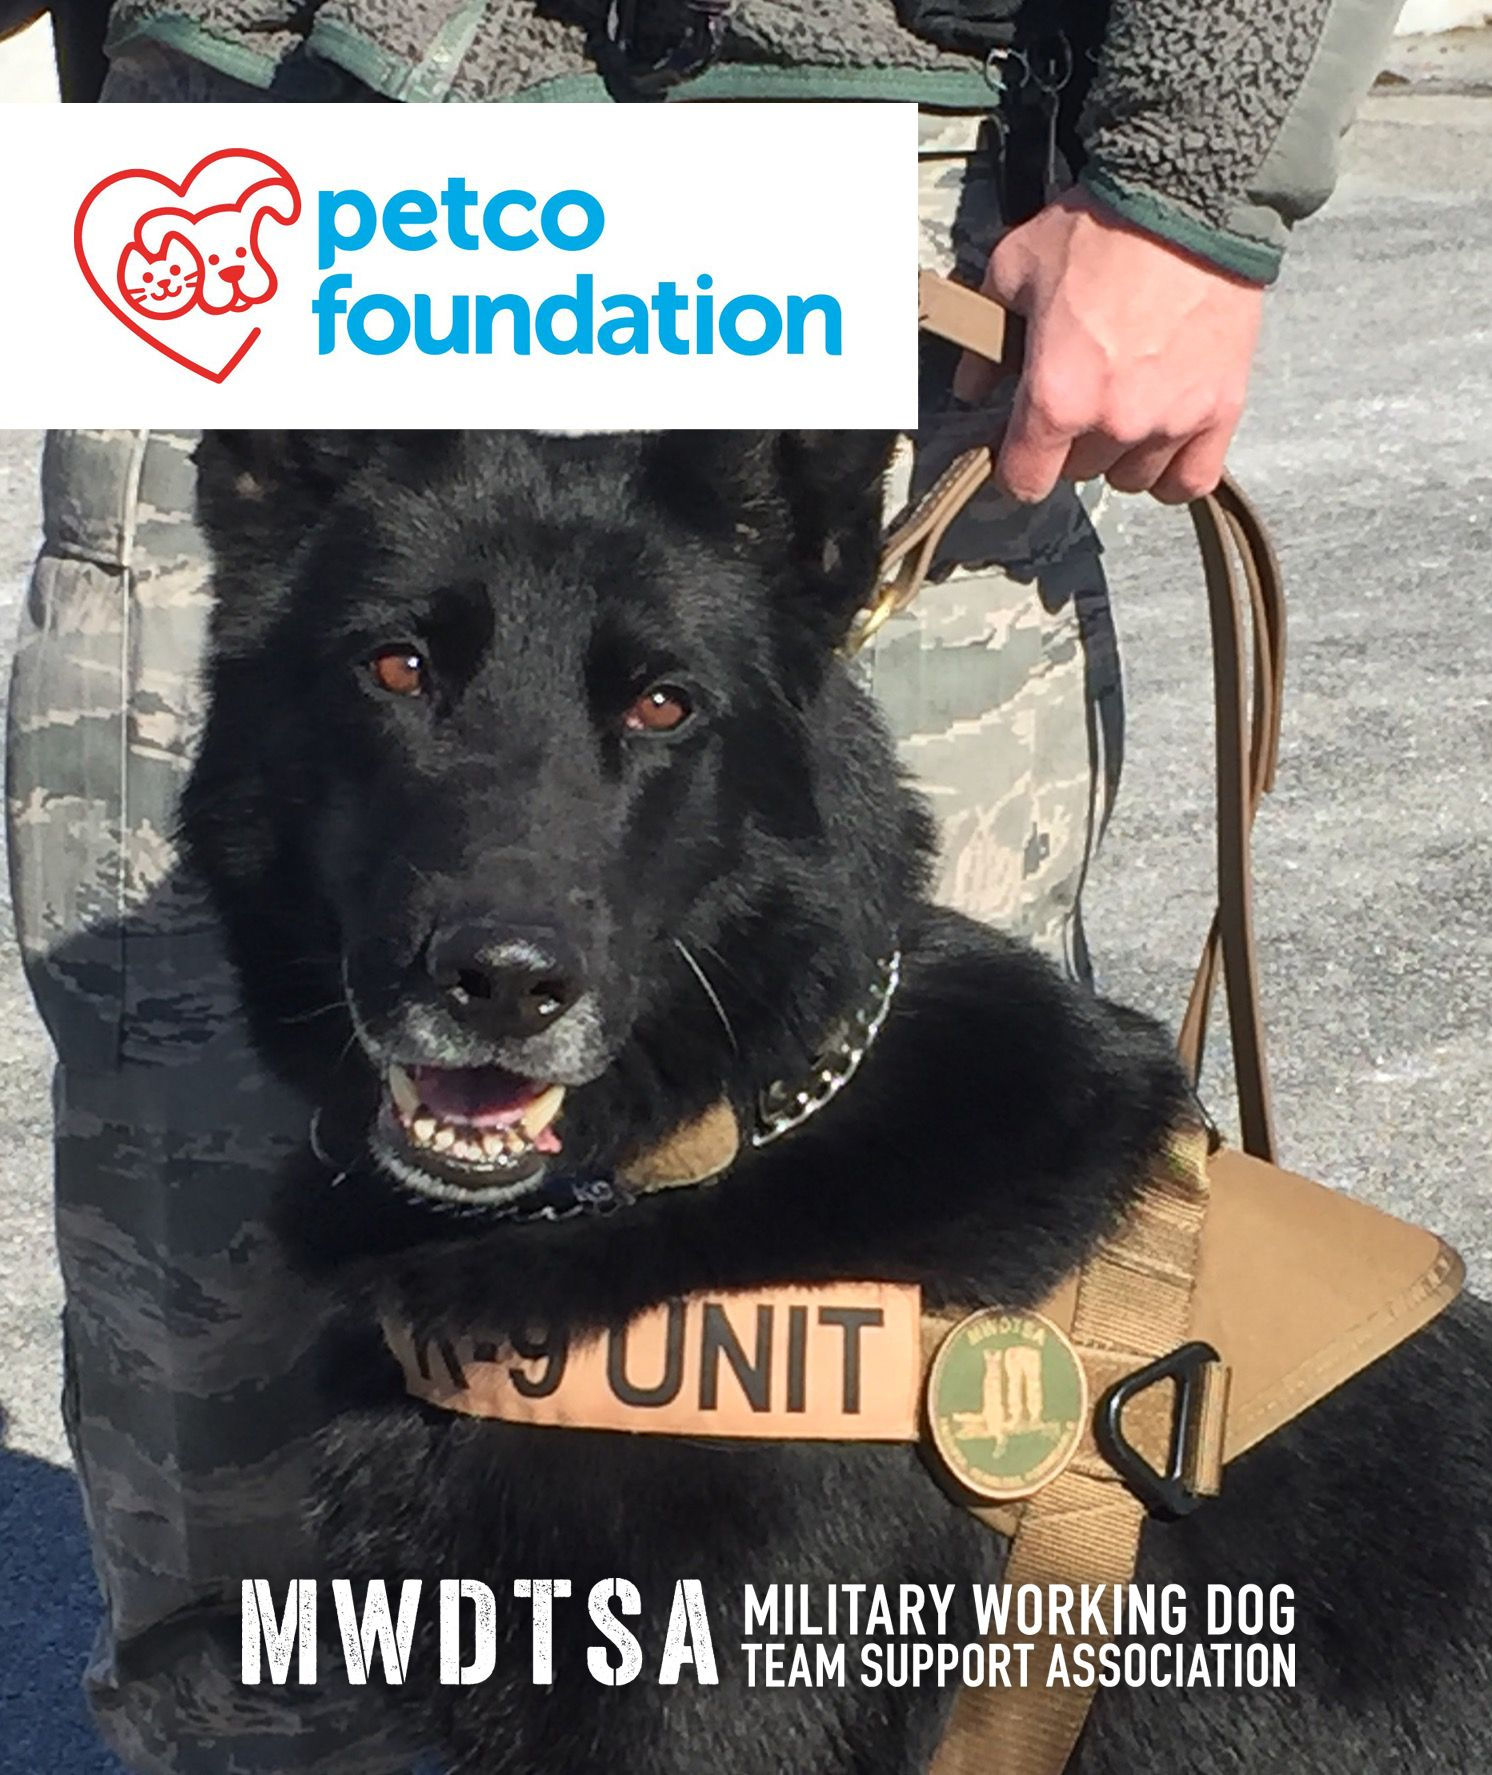 MWDs protect troops though explosives detection, specialized search, and more.